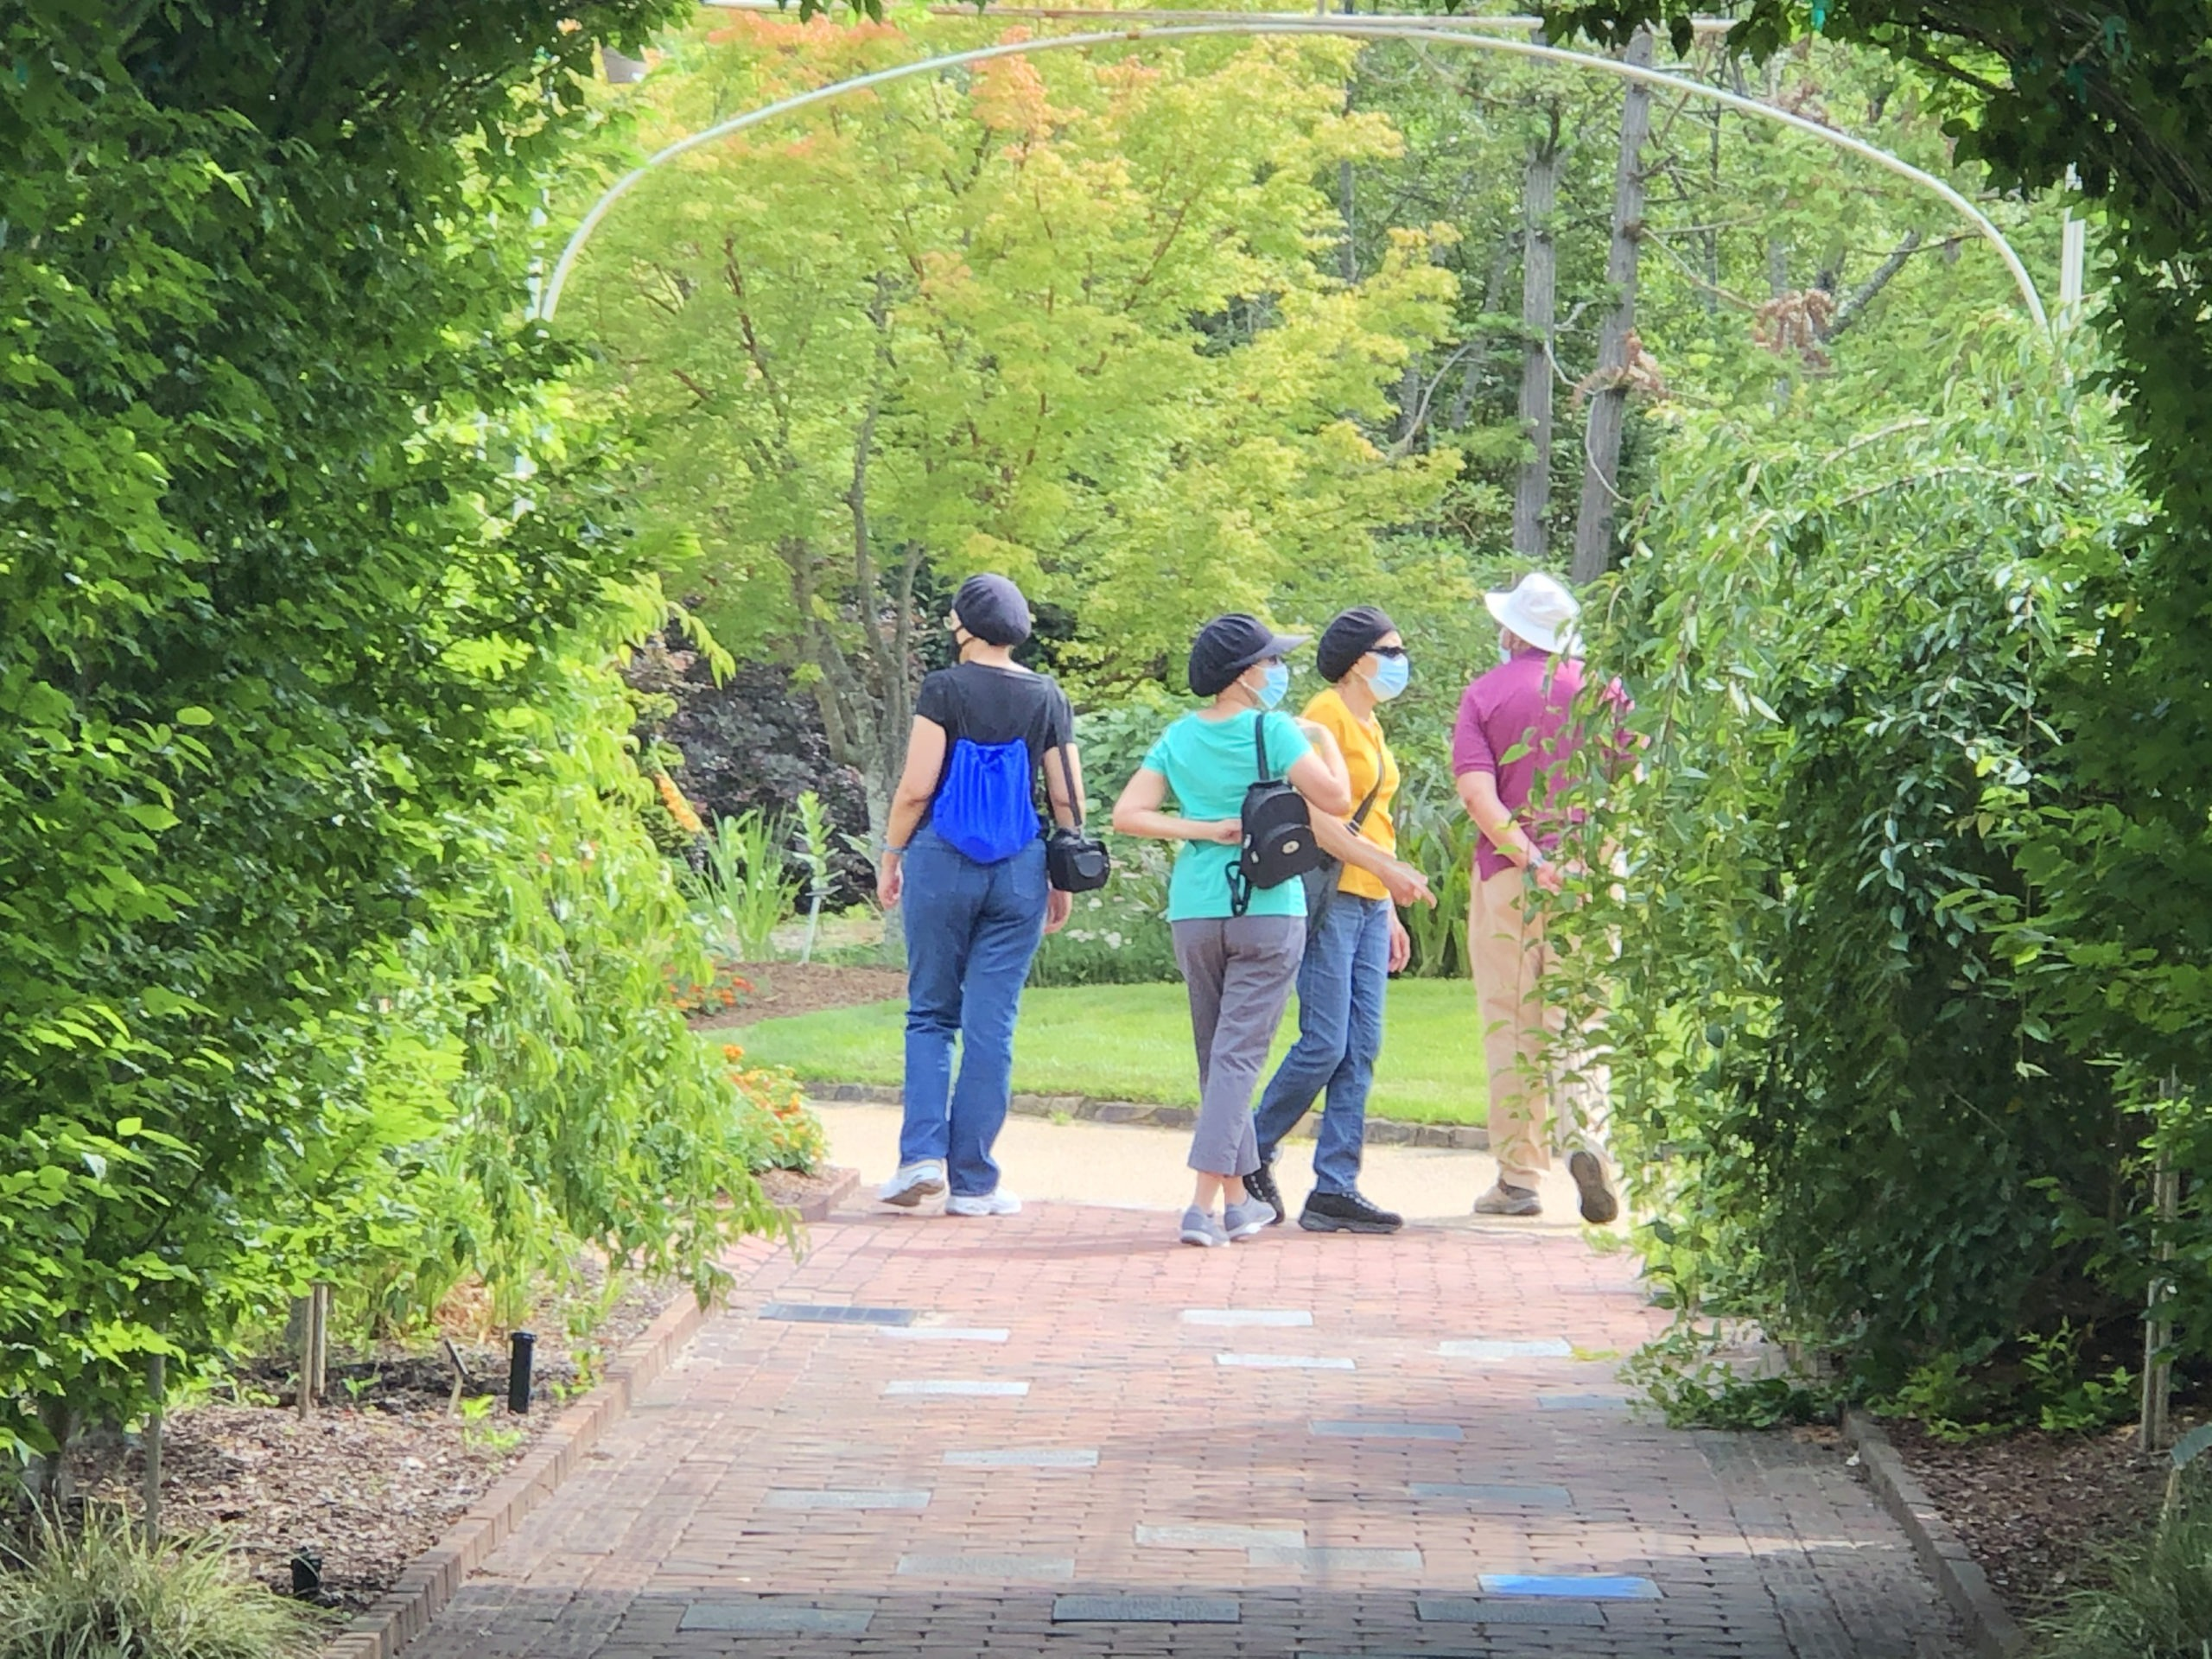 Guests visiting Lewis Ginter Botanical Garden